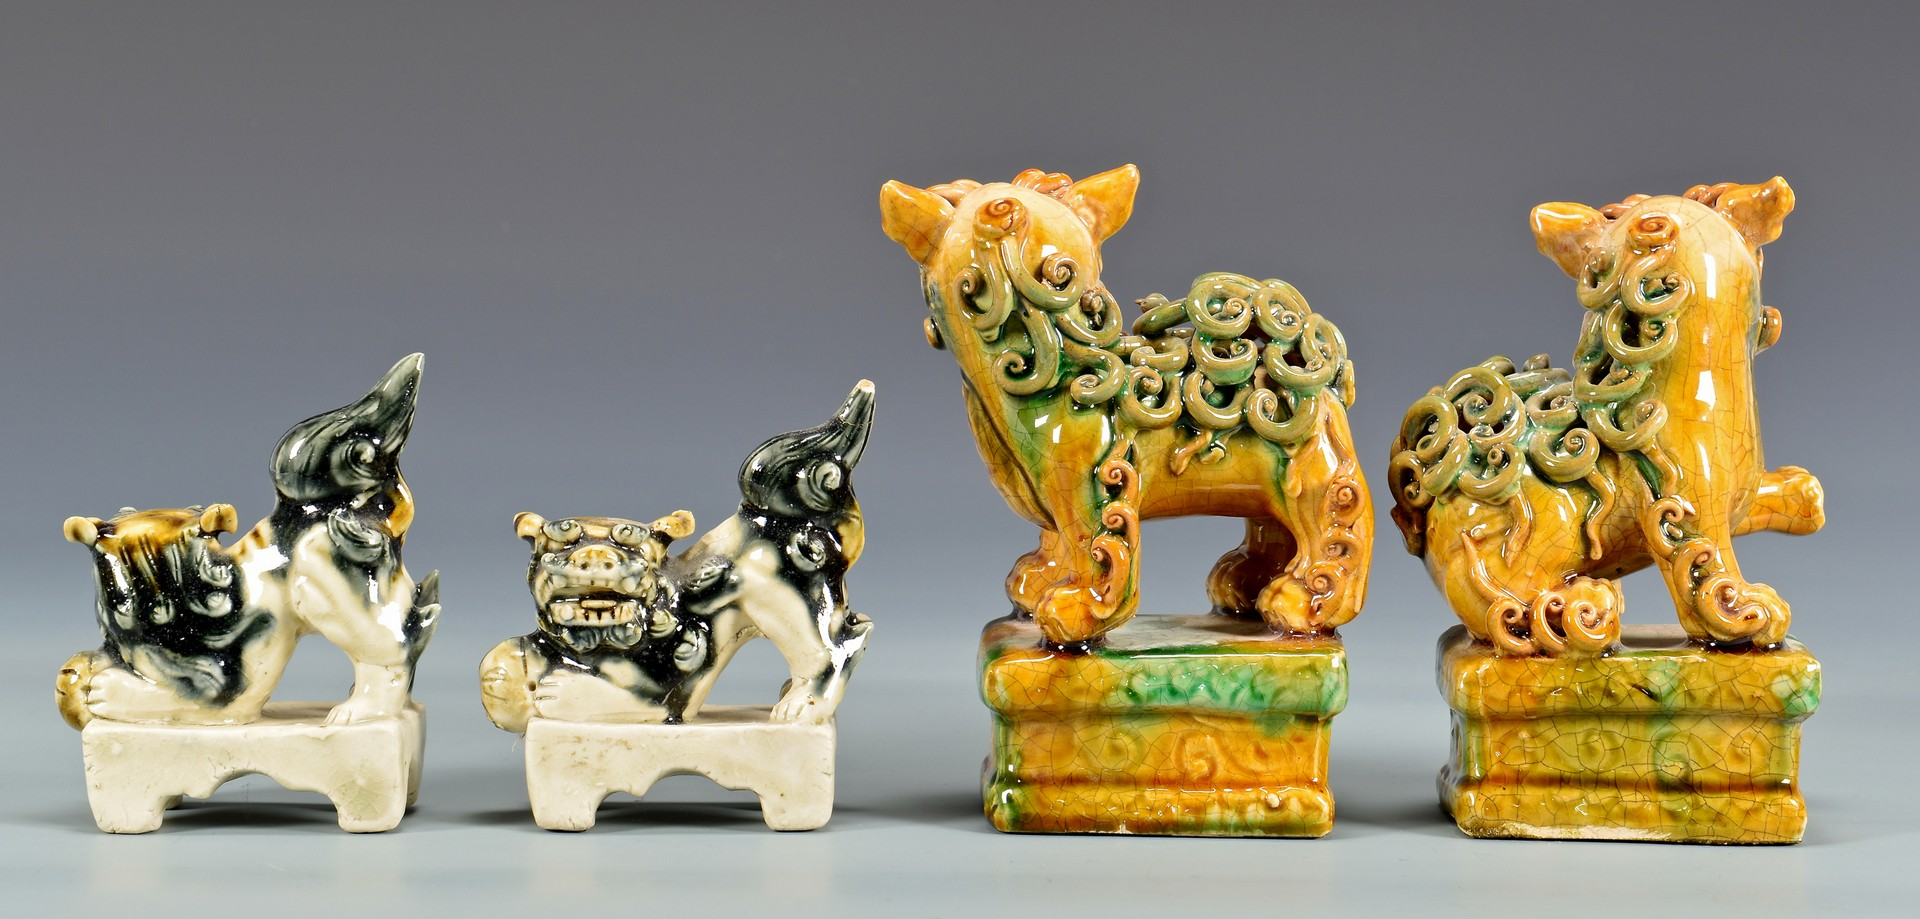 Lot 4010215: 5 Chinese Foo Dogs